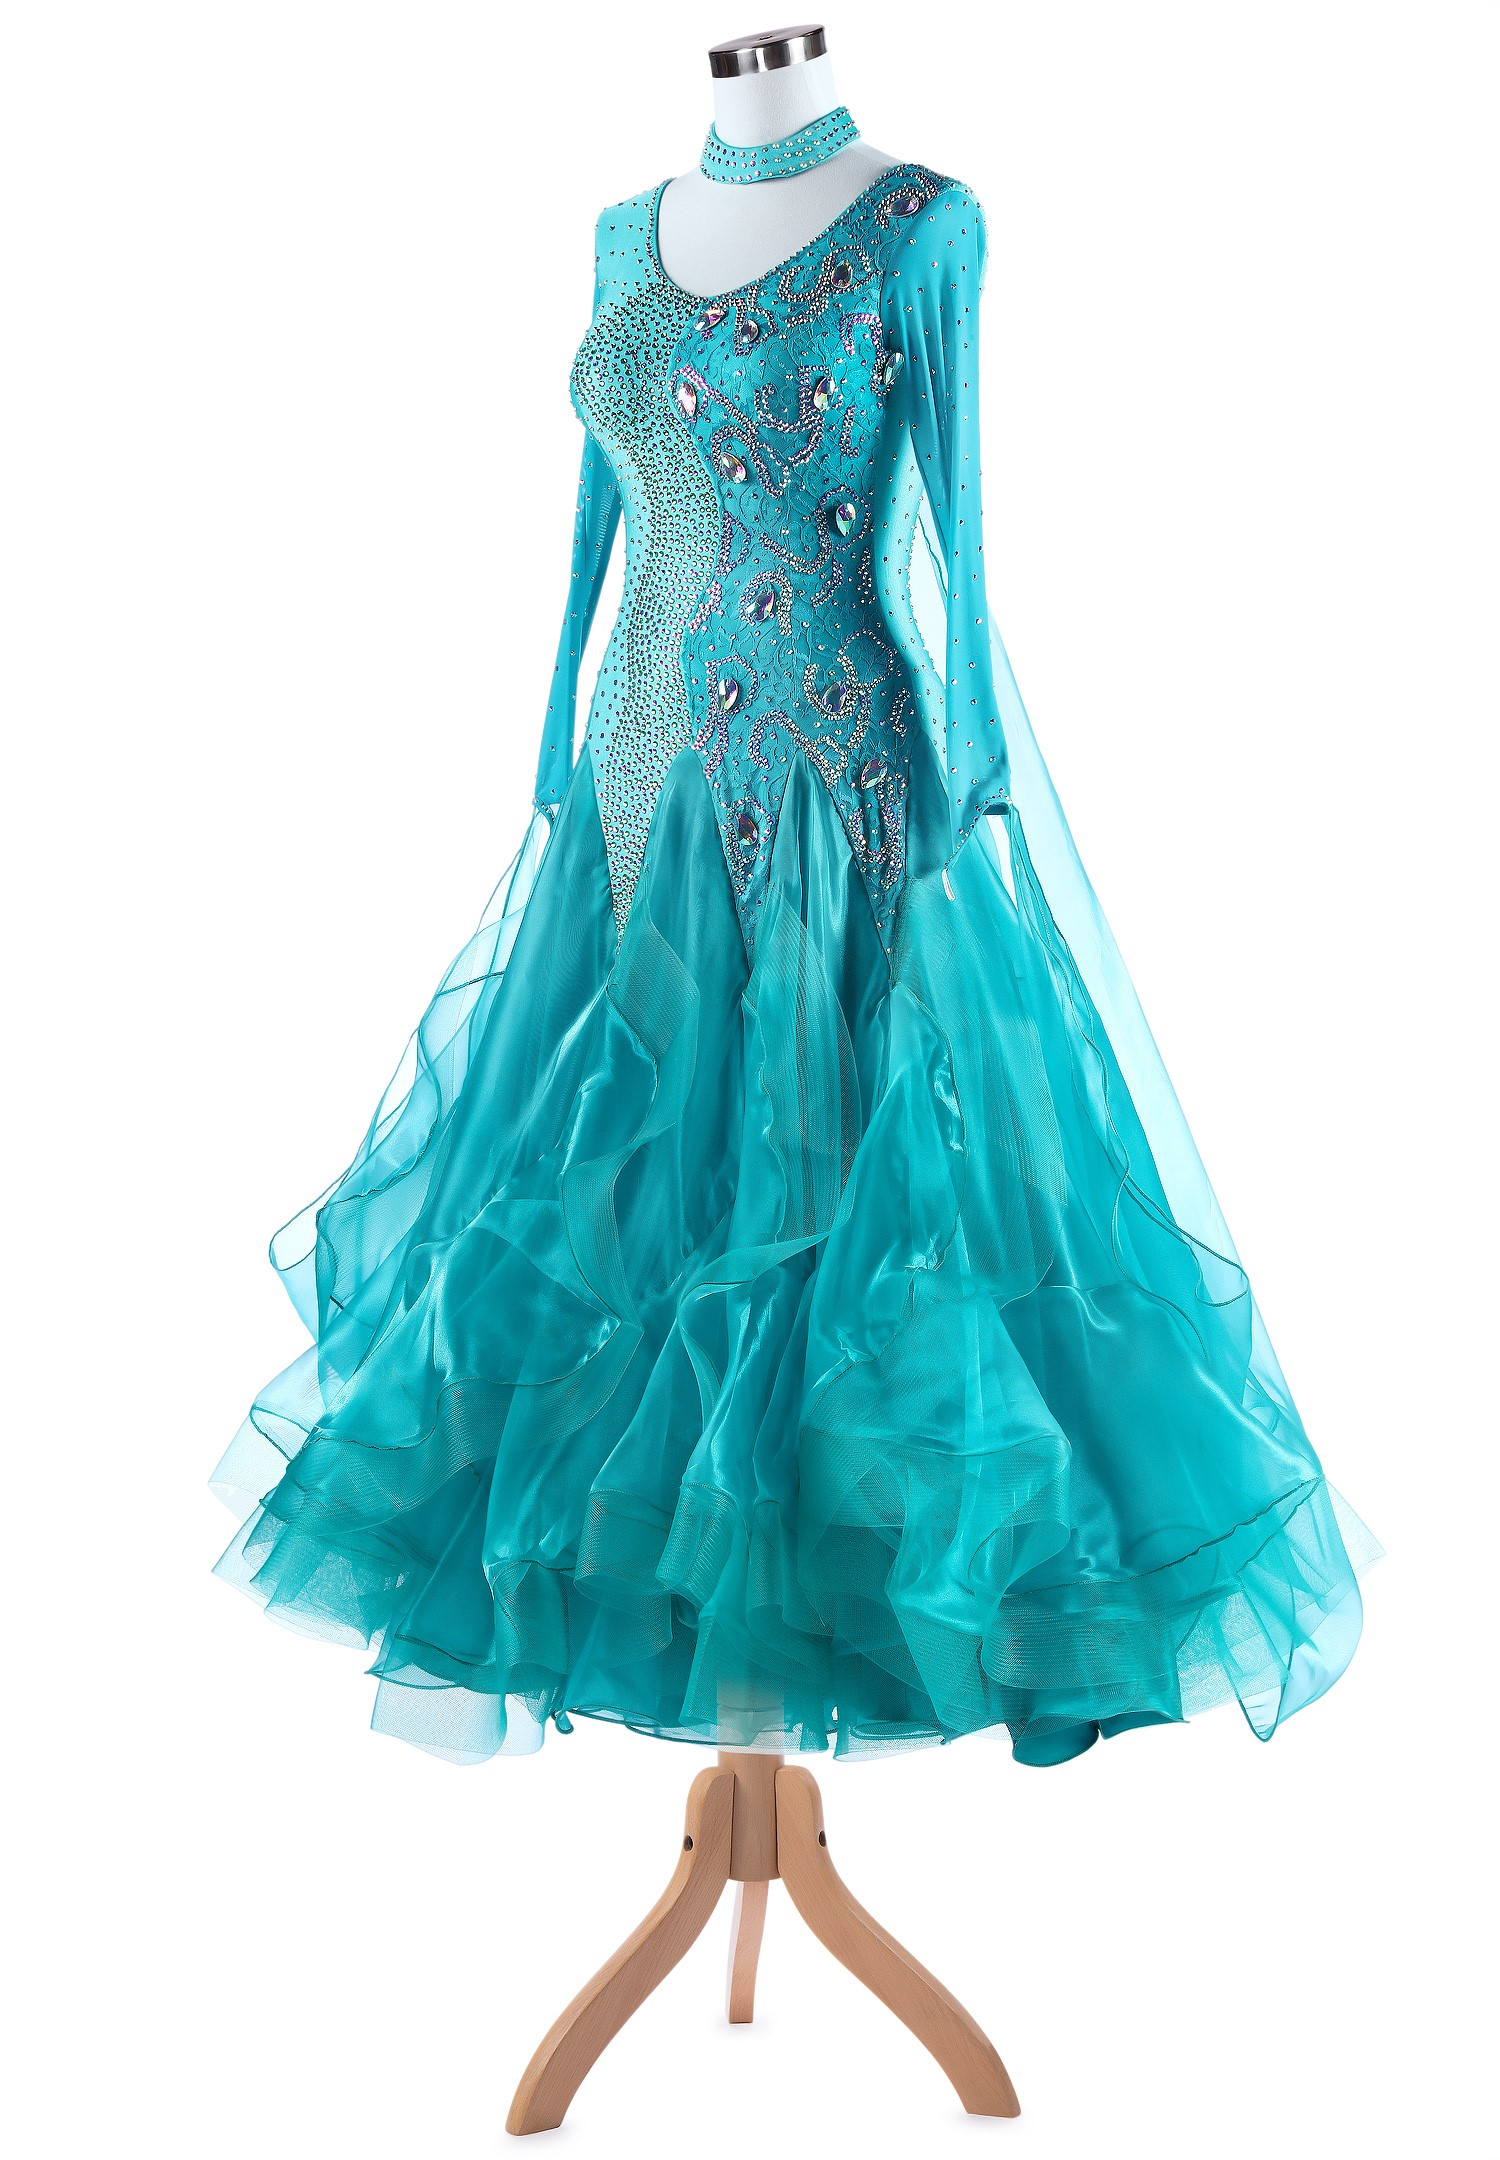 Exquisite Dual Division Standard Ballroom Dance Gown A5333 ...